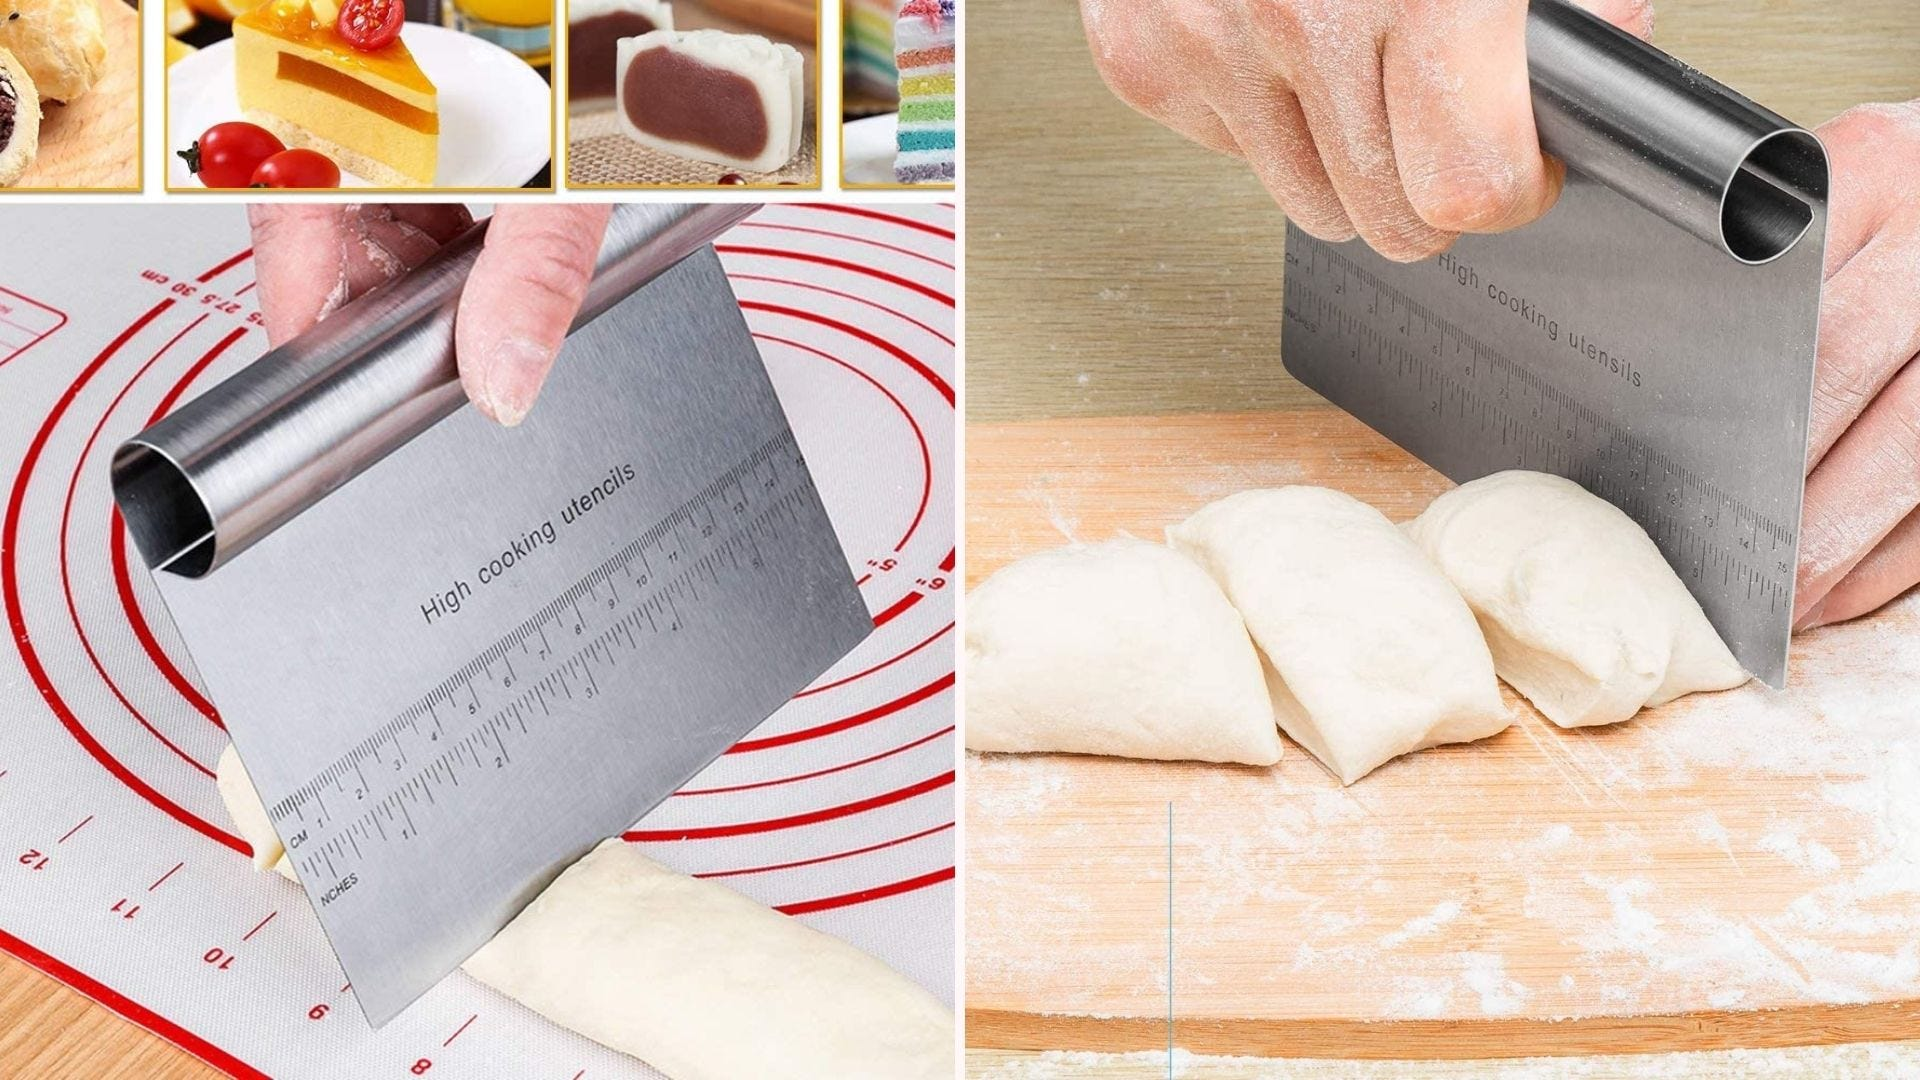 A dough scraper and cutter being used on loaves of bread dough